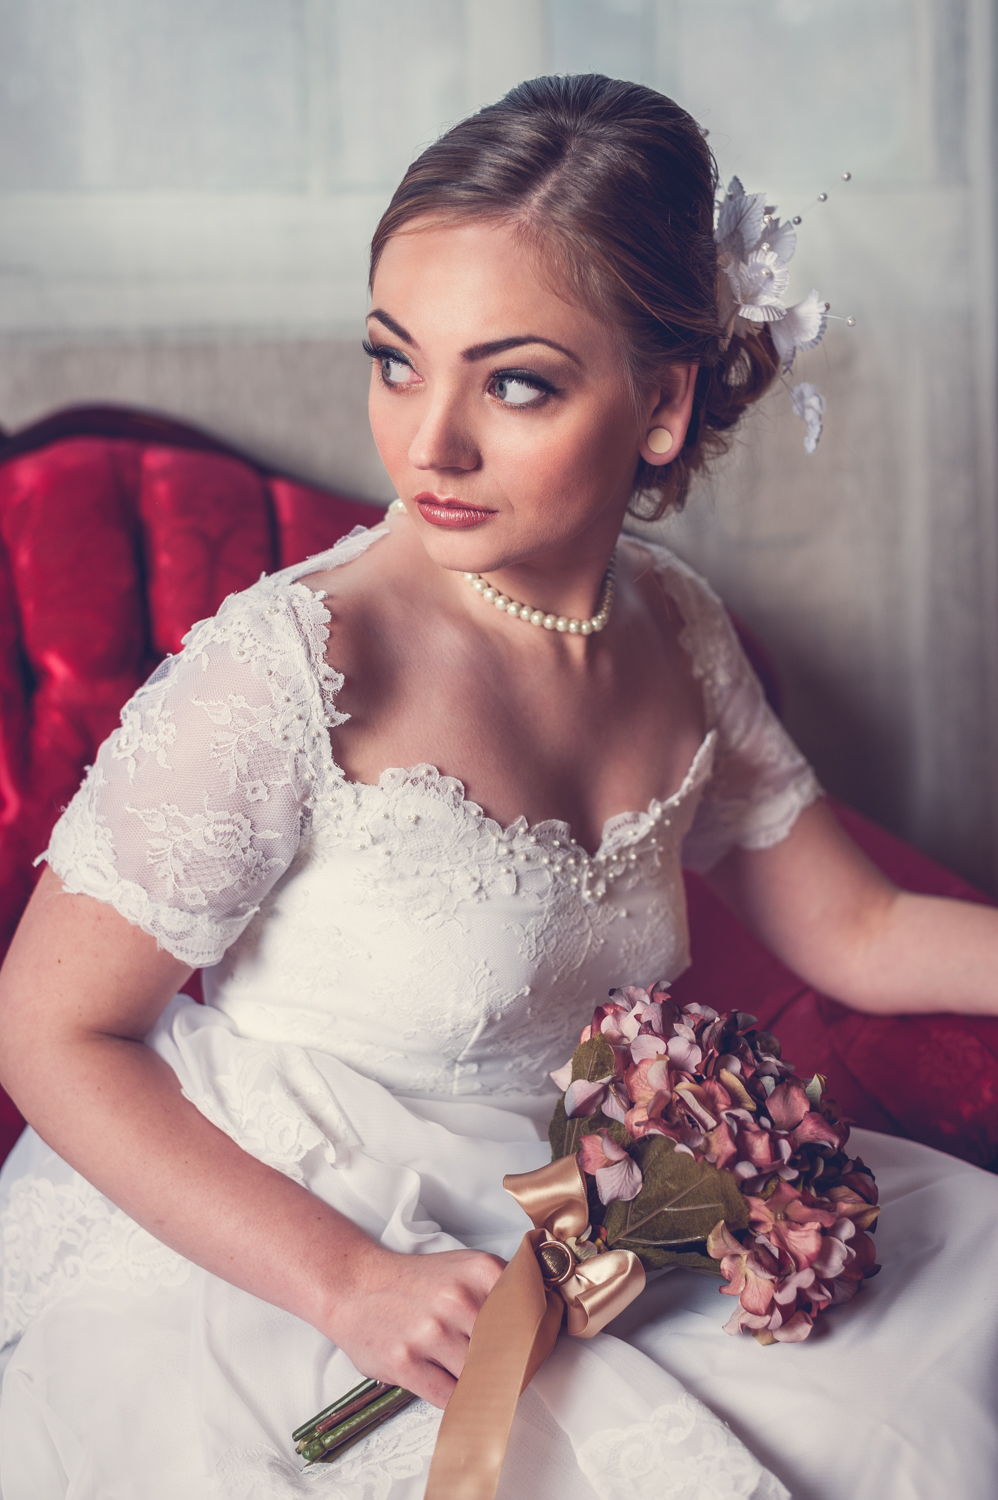 Bridal Editorial Wedding Photography - Toronto and Hamilton Photographer -Marek Michalek 01.jpg